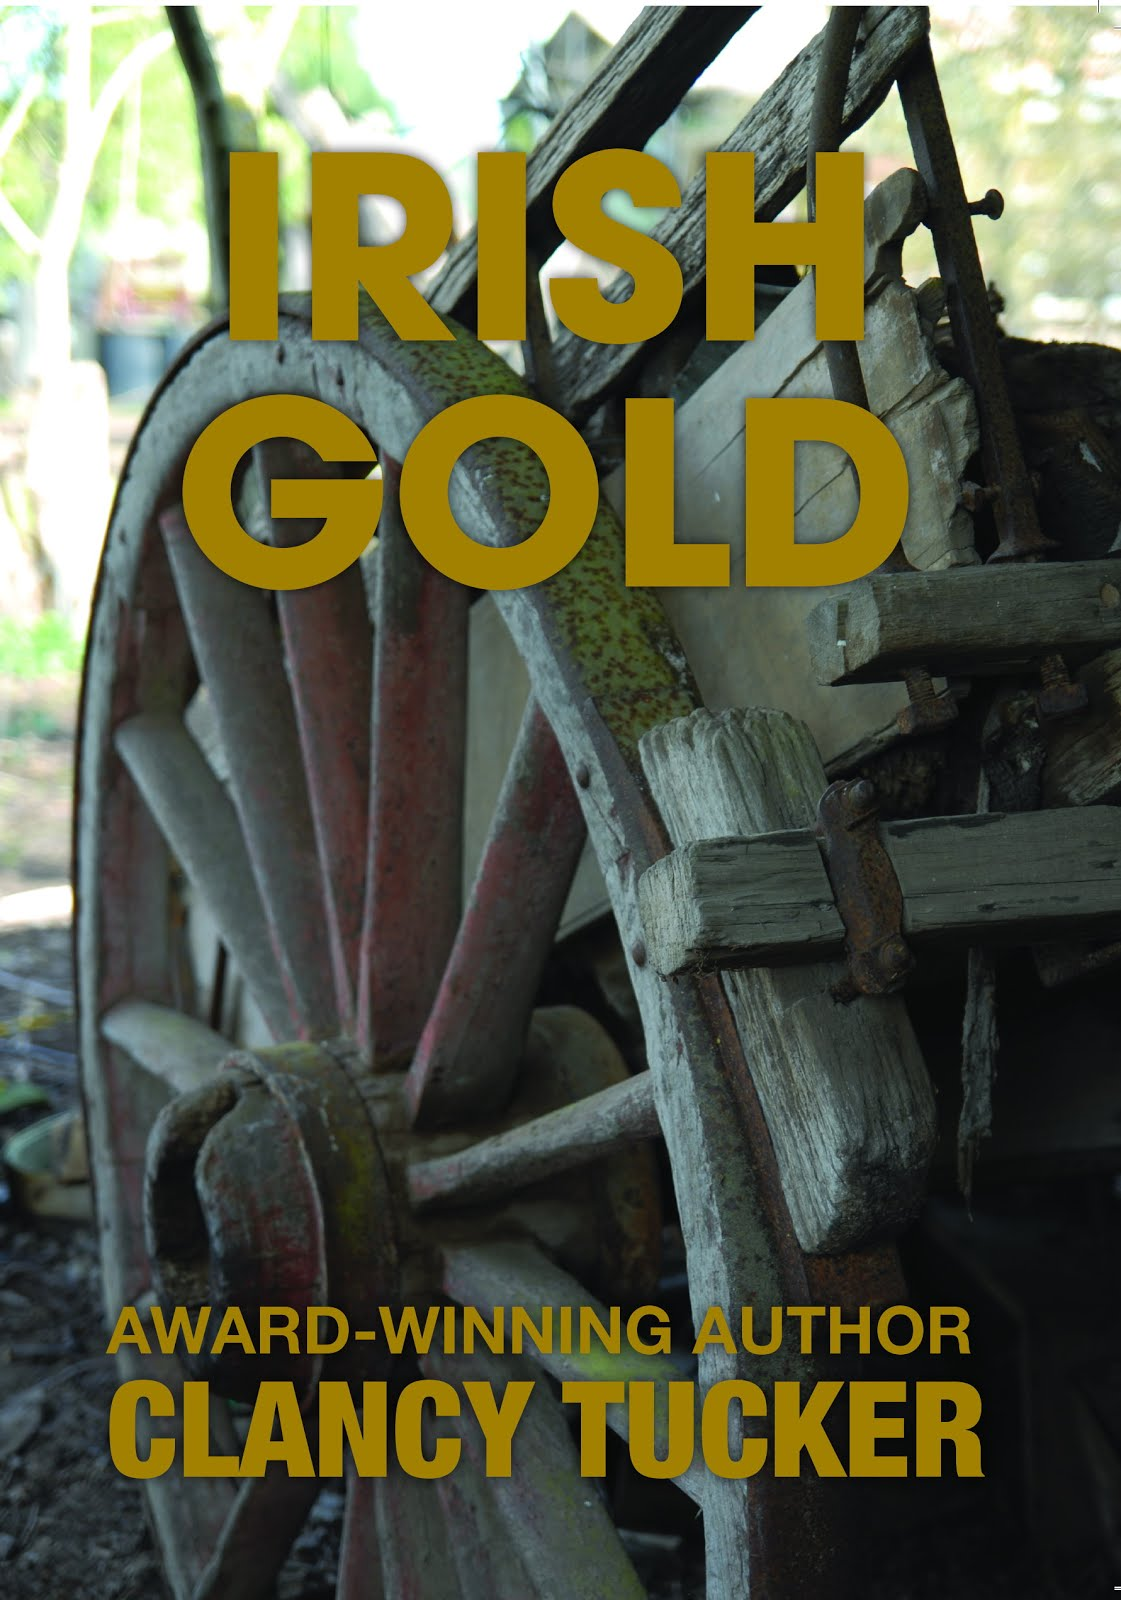 'IRISH GOLD' PAPERBACK IN AUSTRALIA